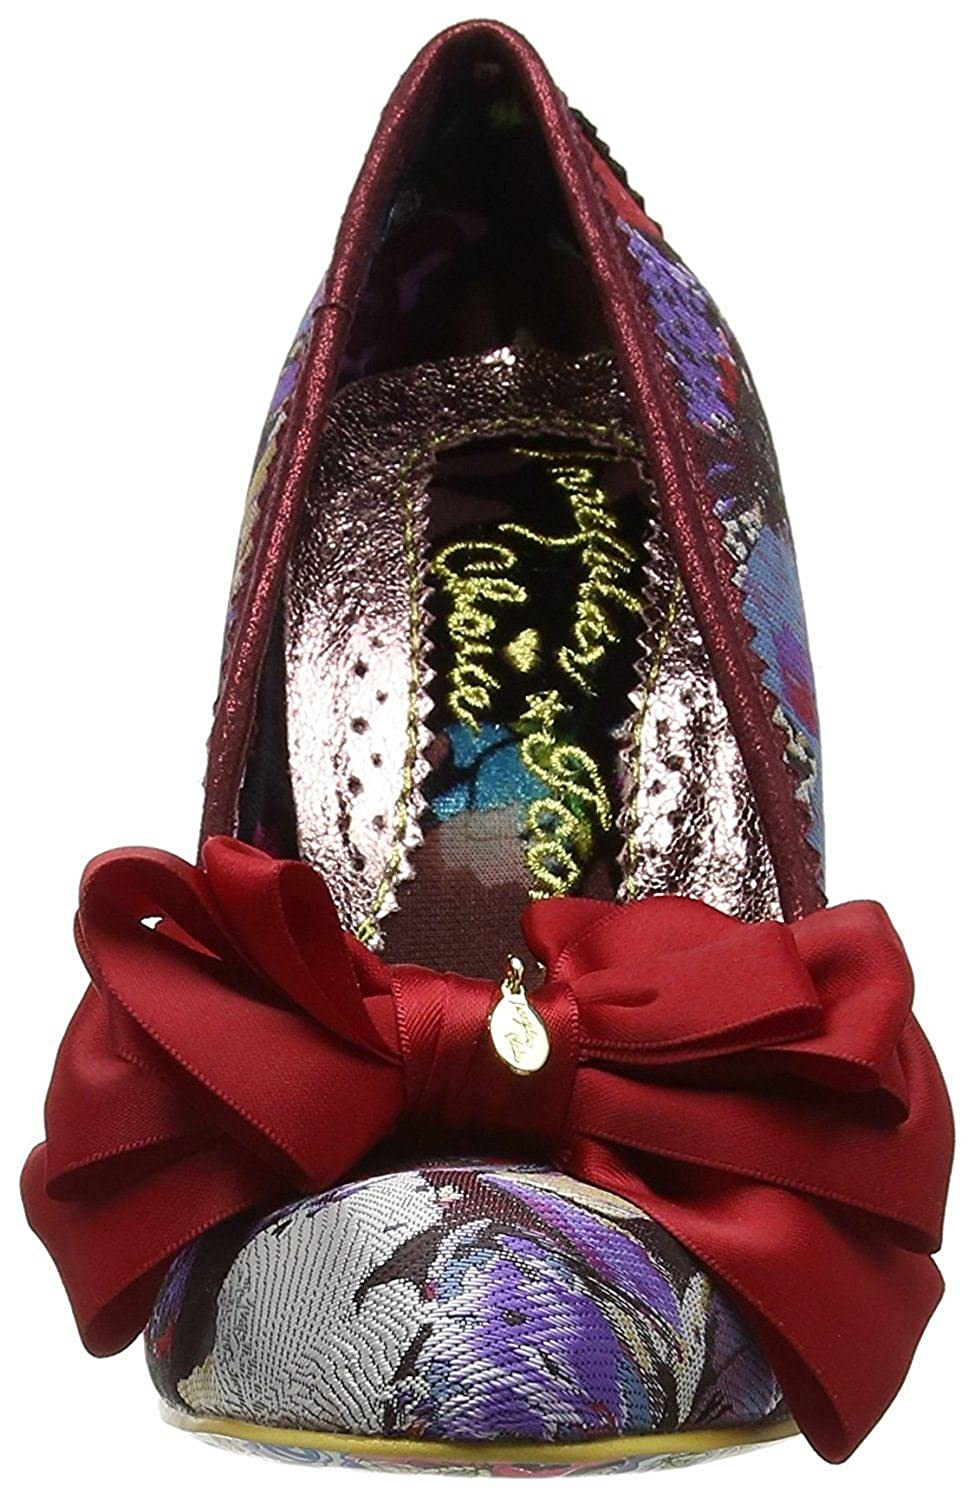 Irregular Choice Ascot Rot Multi Fersen Damen Fersen Multi Court Schuhe - 53d0ef